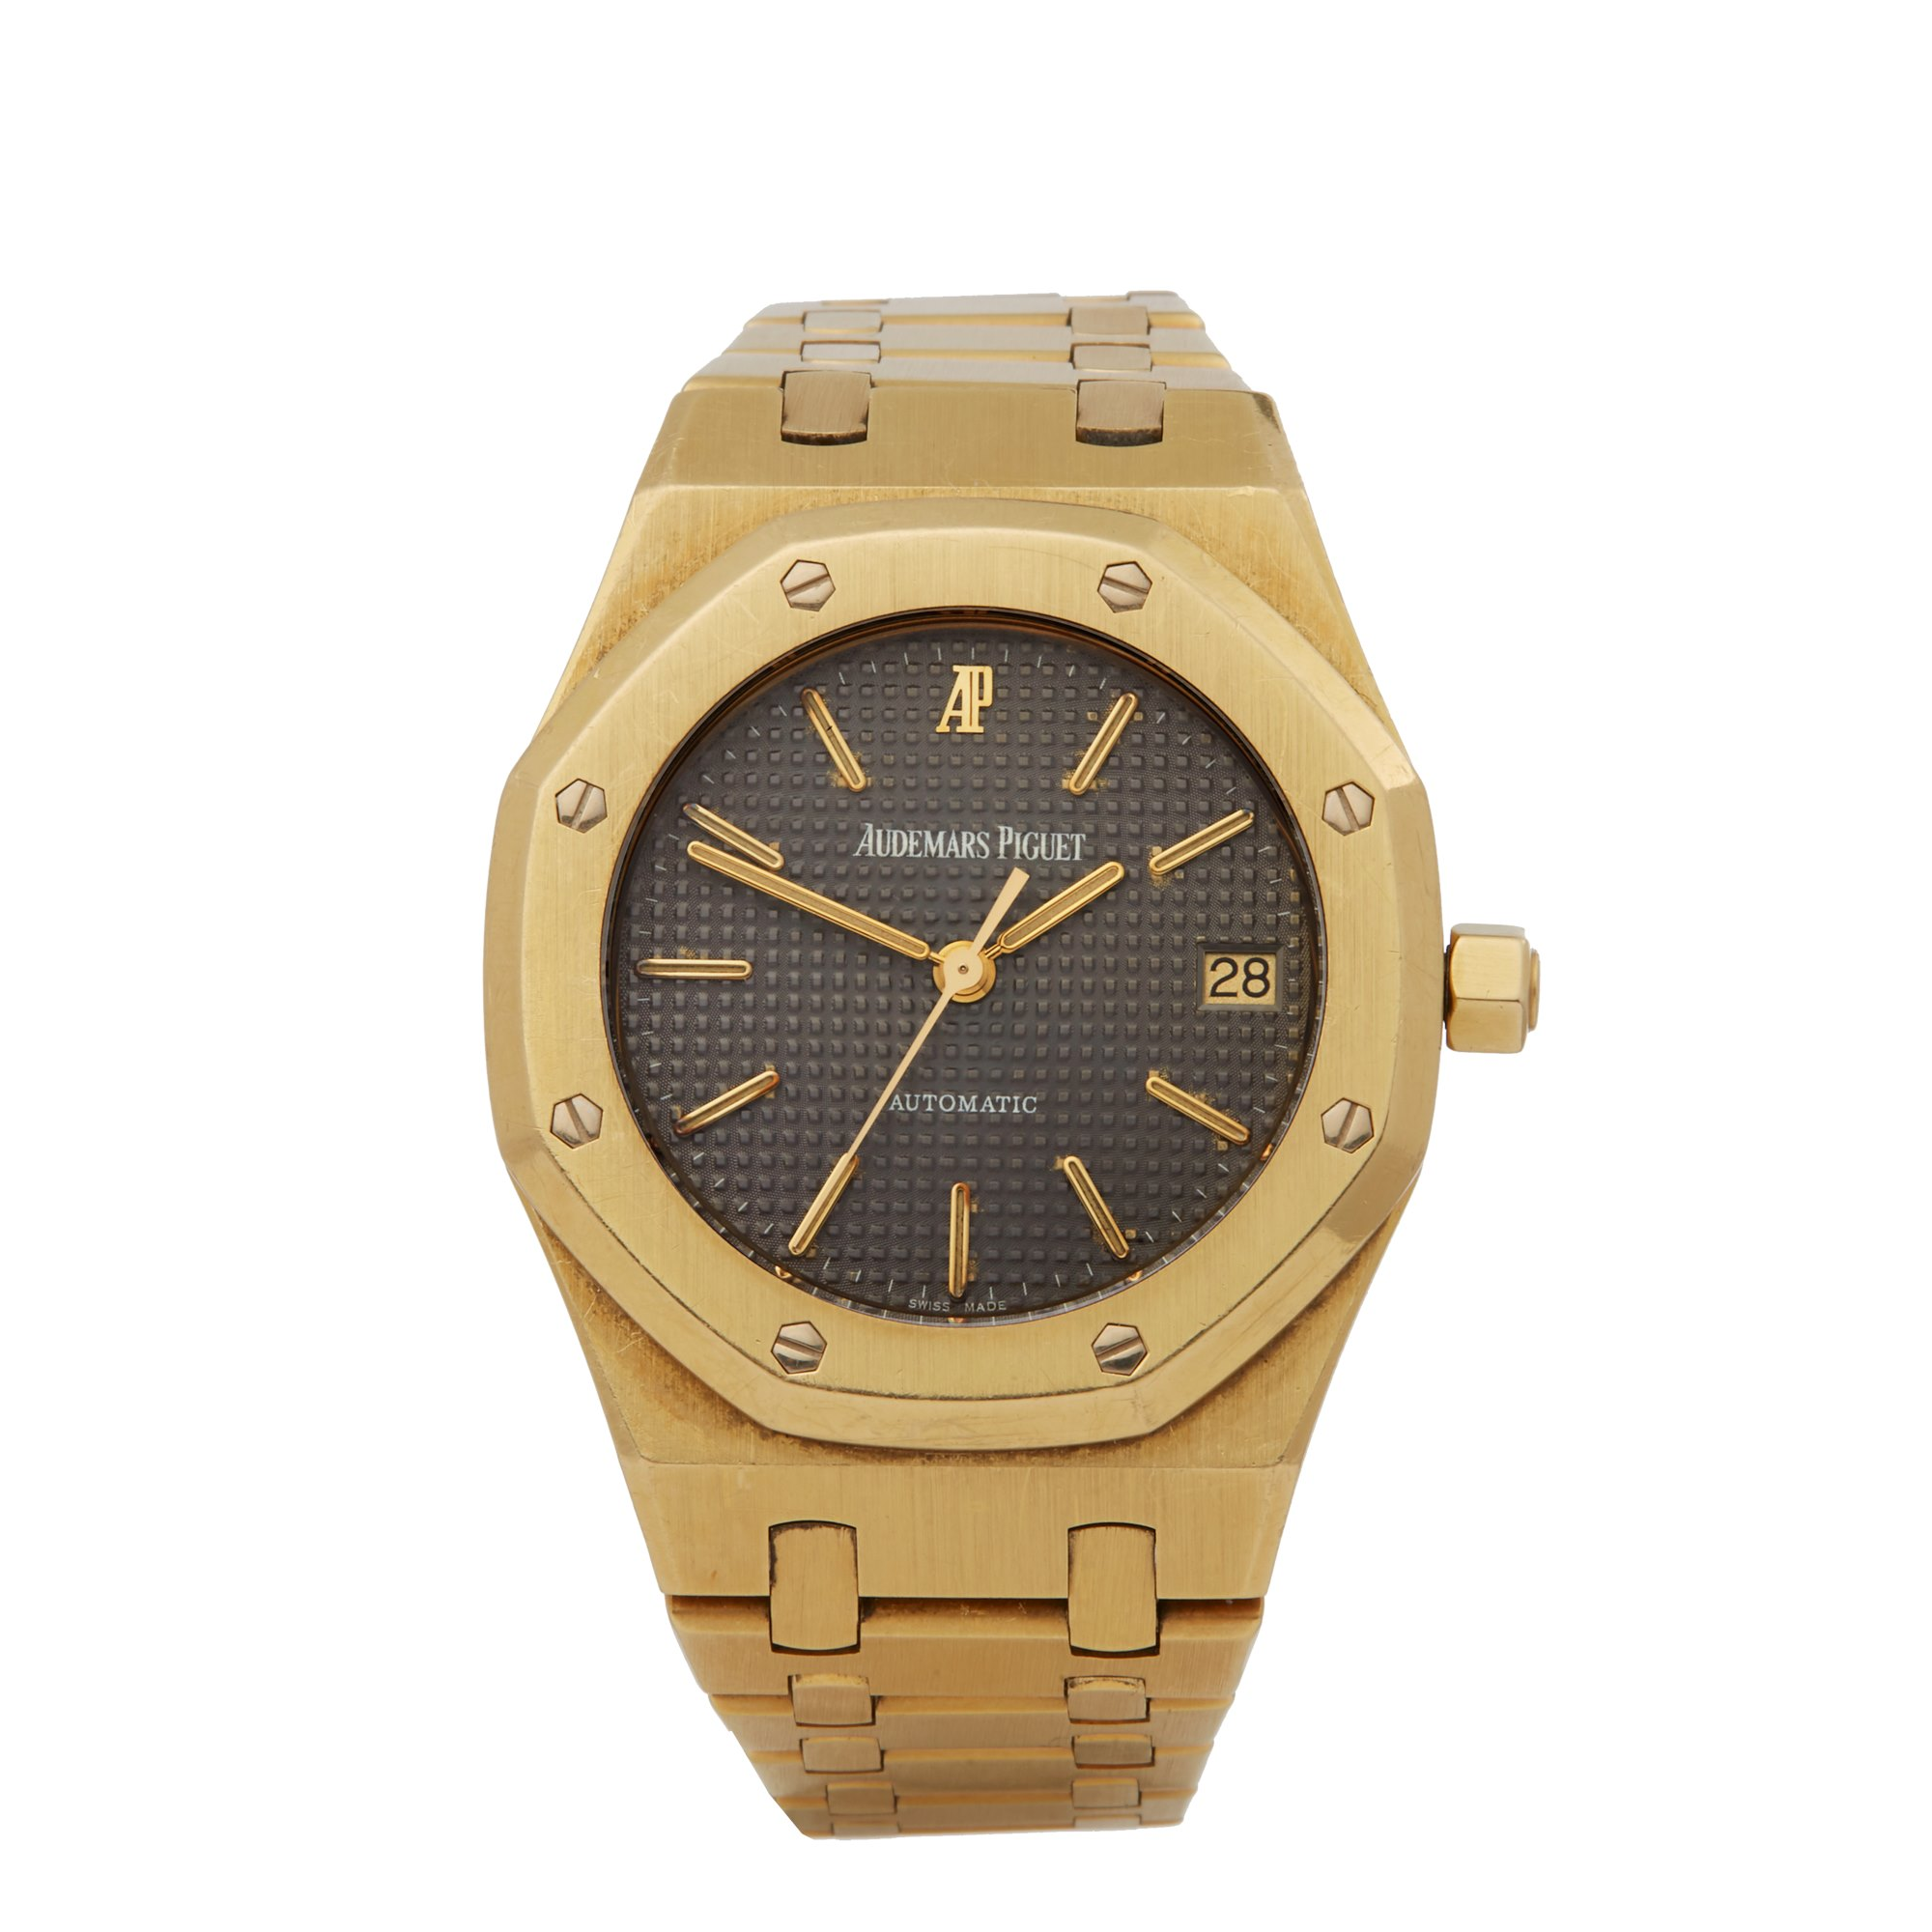 Audemars Piguet Royal Oak Tropical Early Series 18K Yellow Gold - 14790BA Geel Goud 14790BA